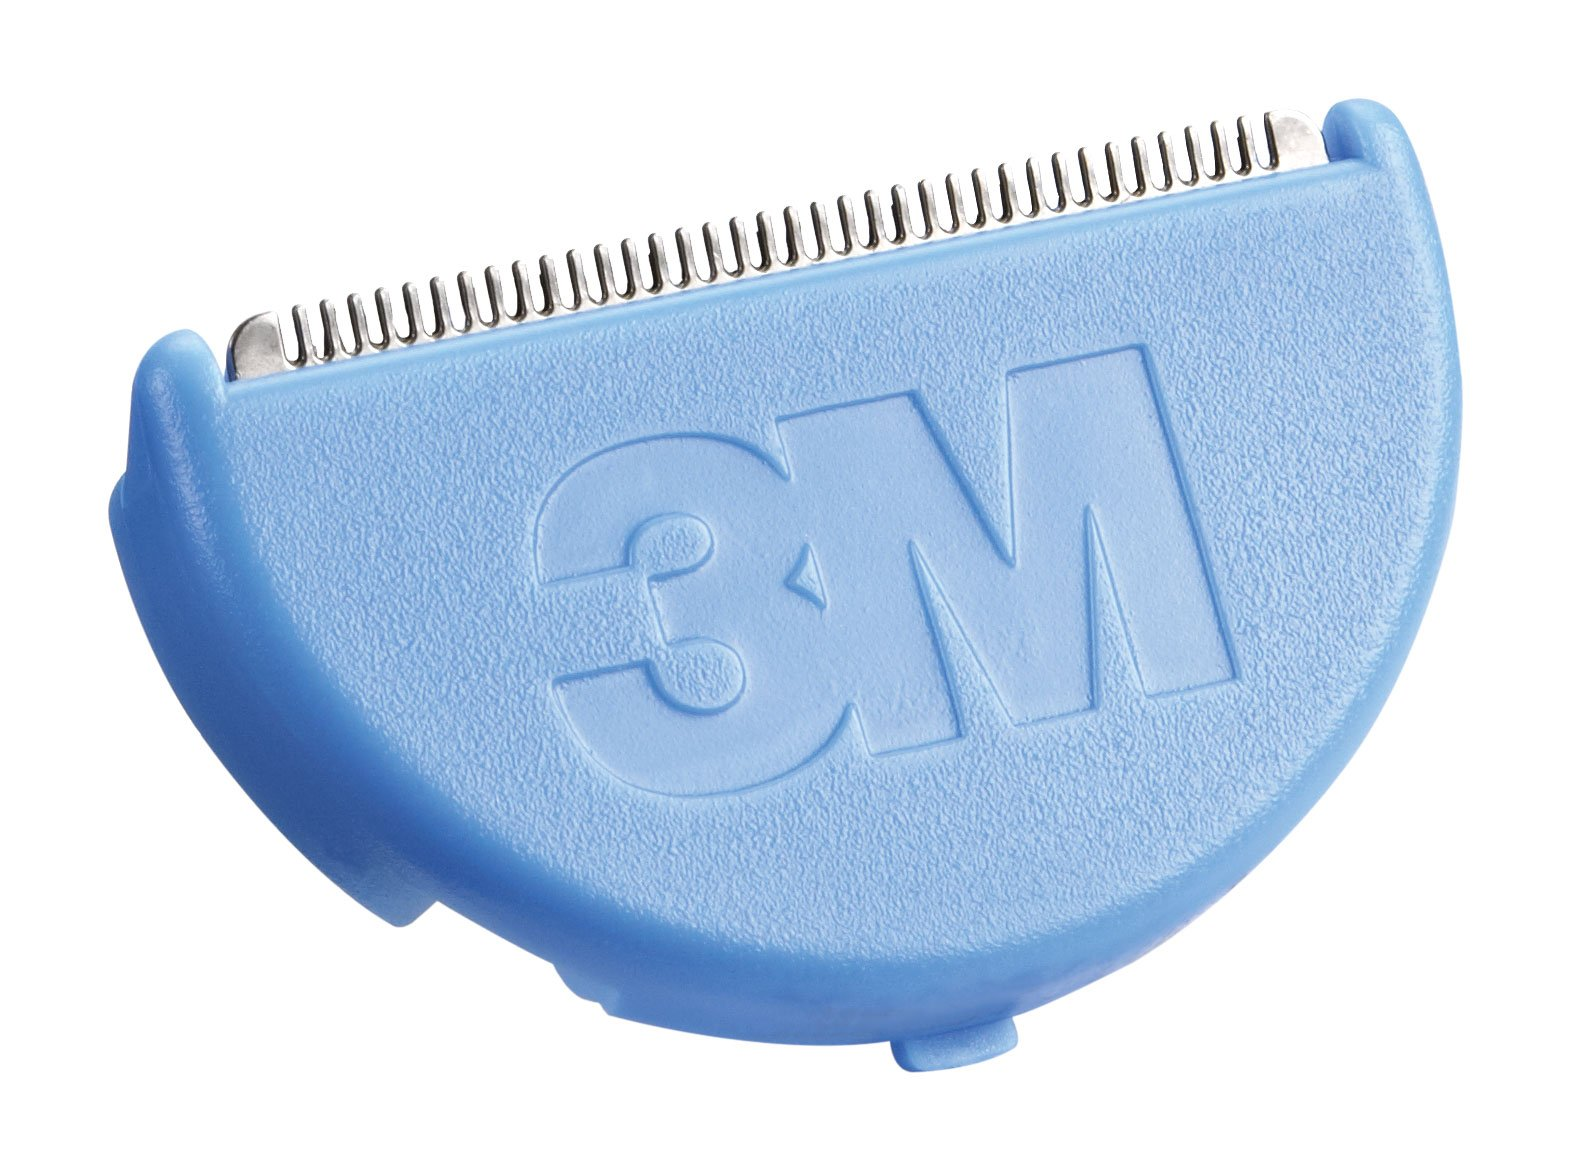 3M Surgical Clipper Blade 3M, 9680 - Case of 50